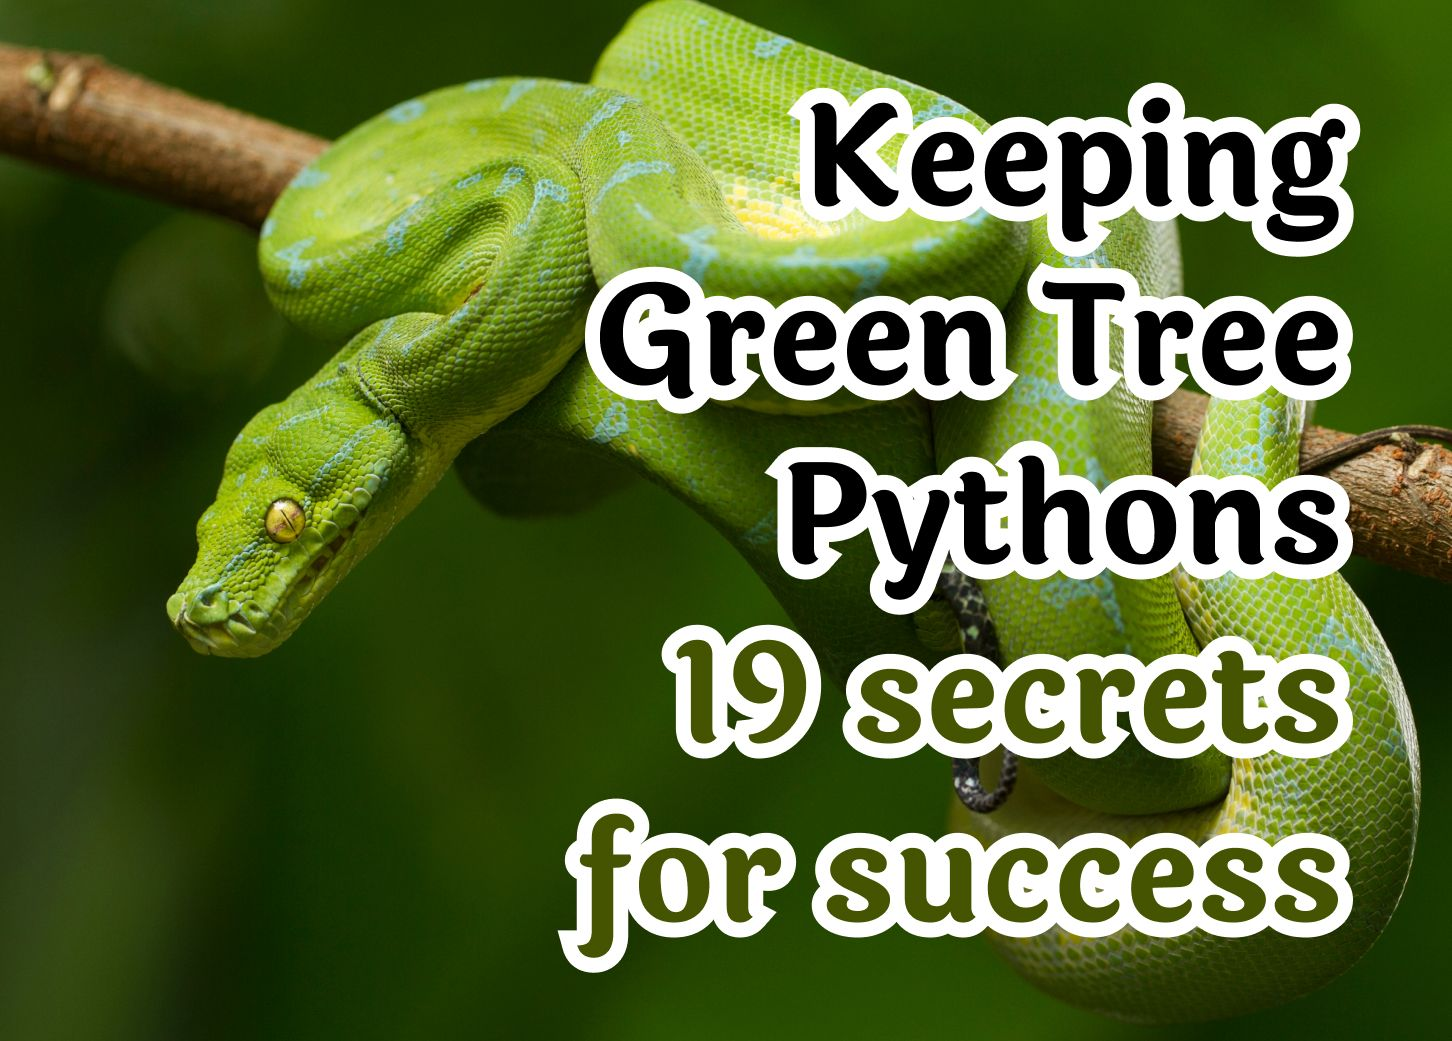 Keeping Green Tree Pythons - 19 secrets for success